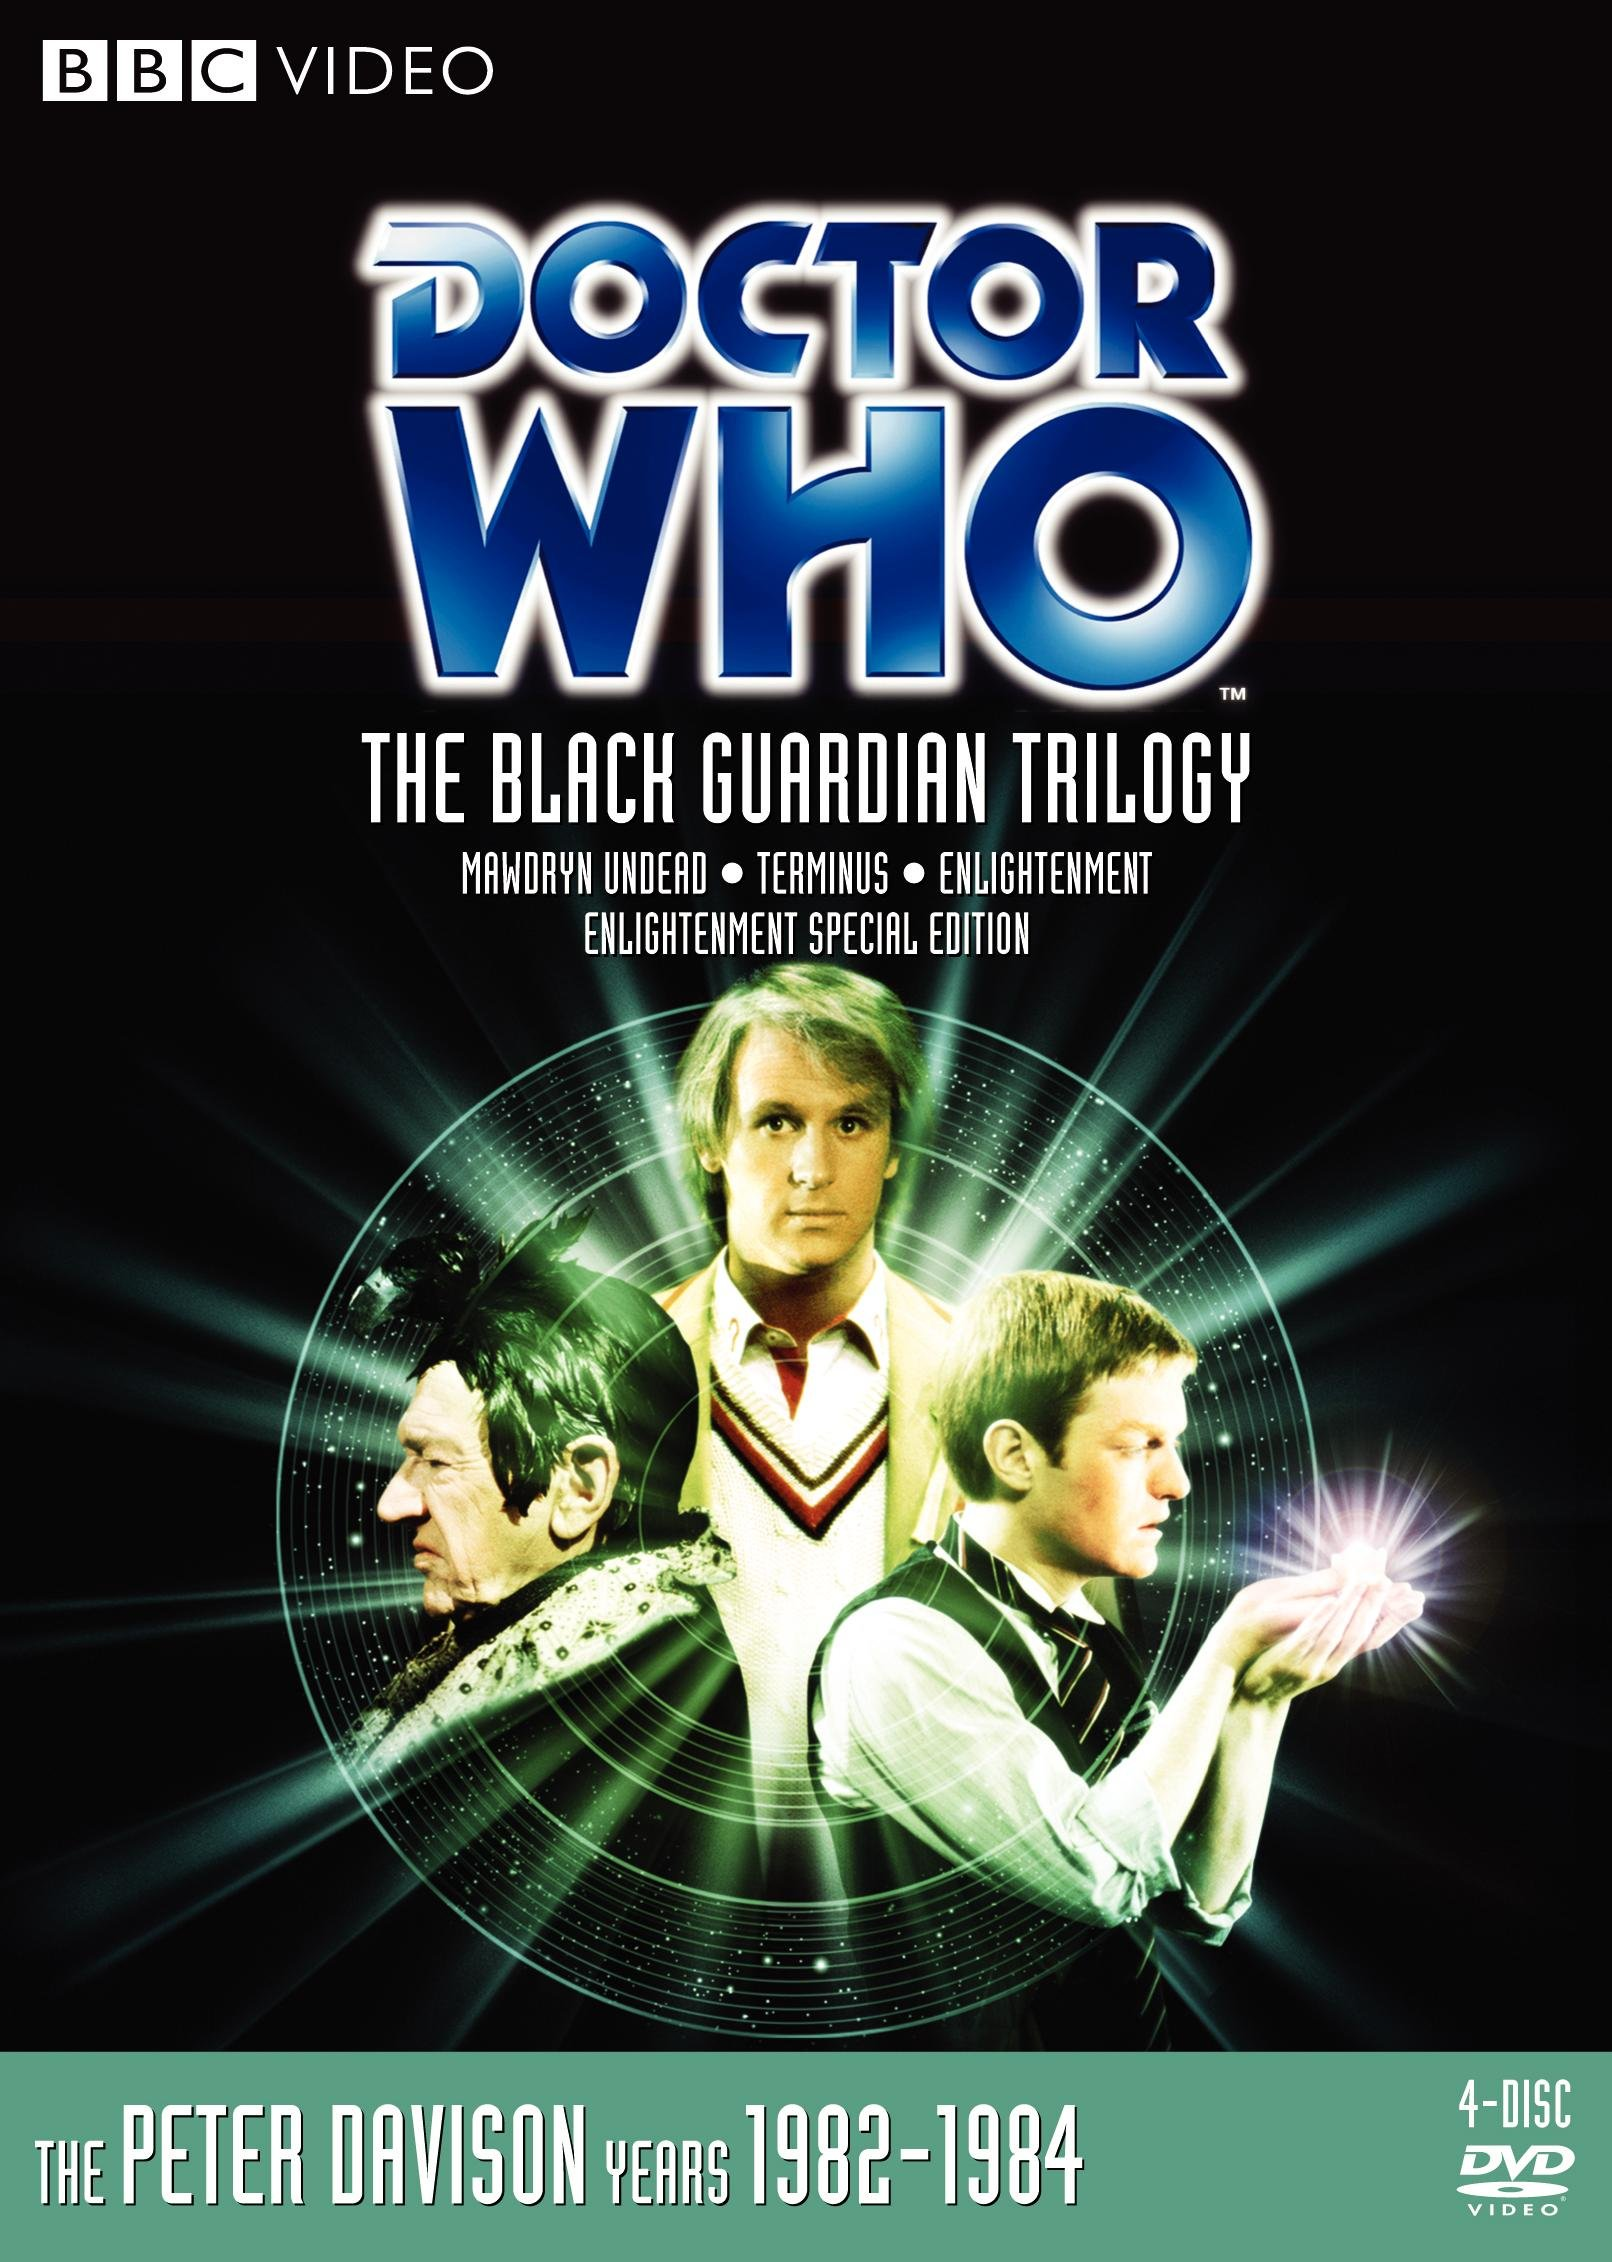 Doctor Who: The Black Guardian Trilogy (Mawdryn Undead / Terminus / Enlightenment) (Stories 126 - 128) by Warner Home Video